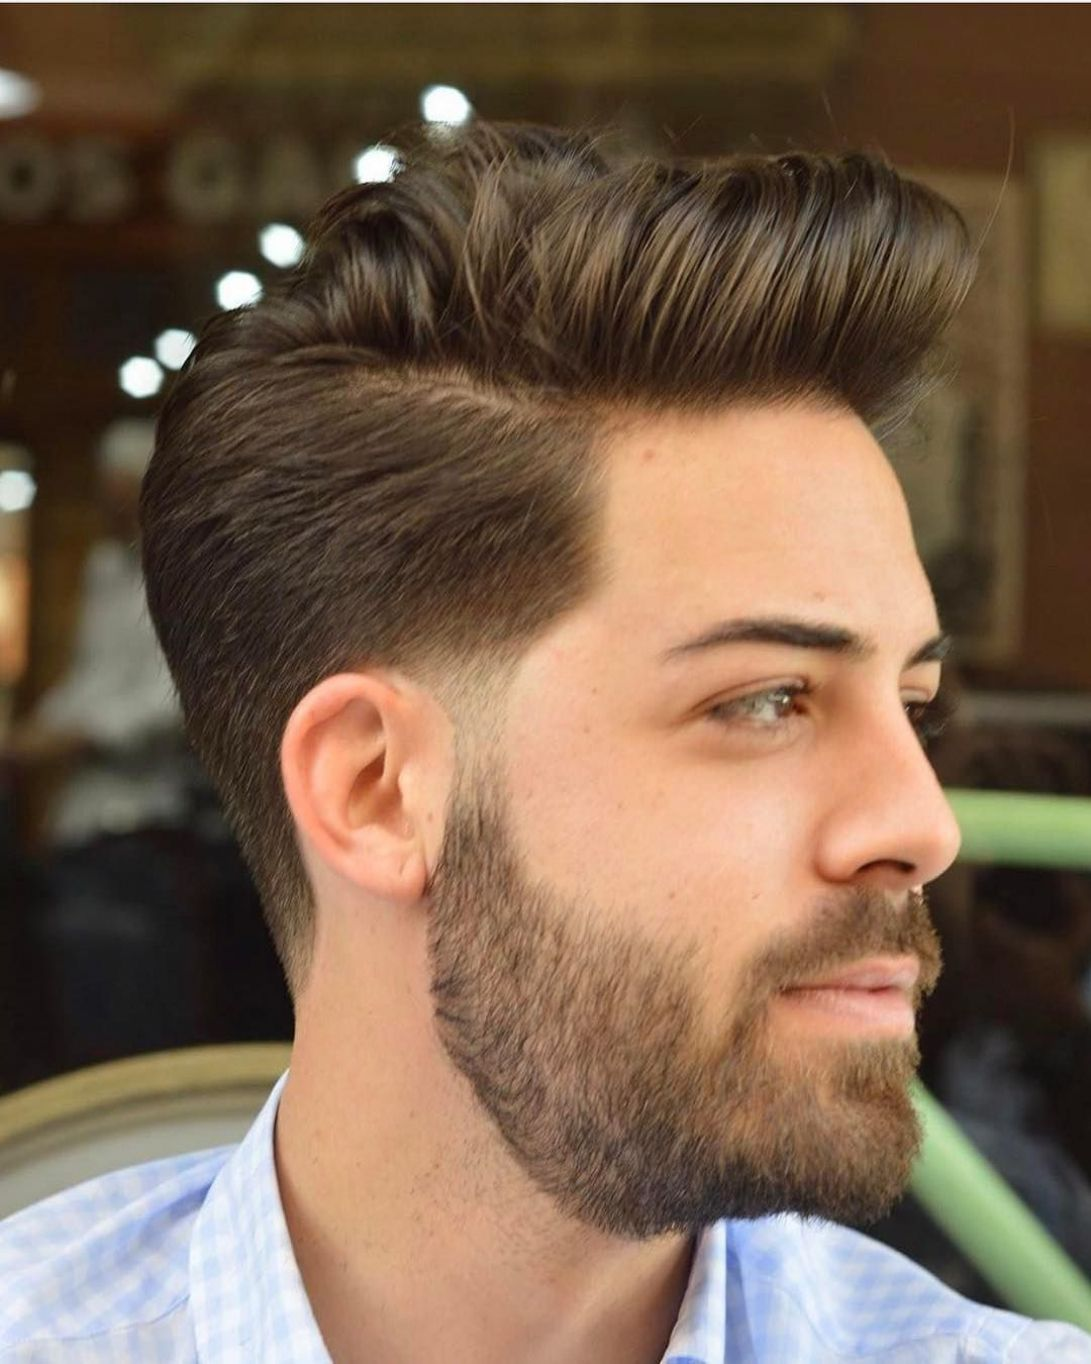 Astounding Mens Quiff Cool Win Handsome Men Hairstyle Mens Quiff Mens Hairstyles Beard Styles Hair And Beard Styles